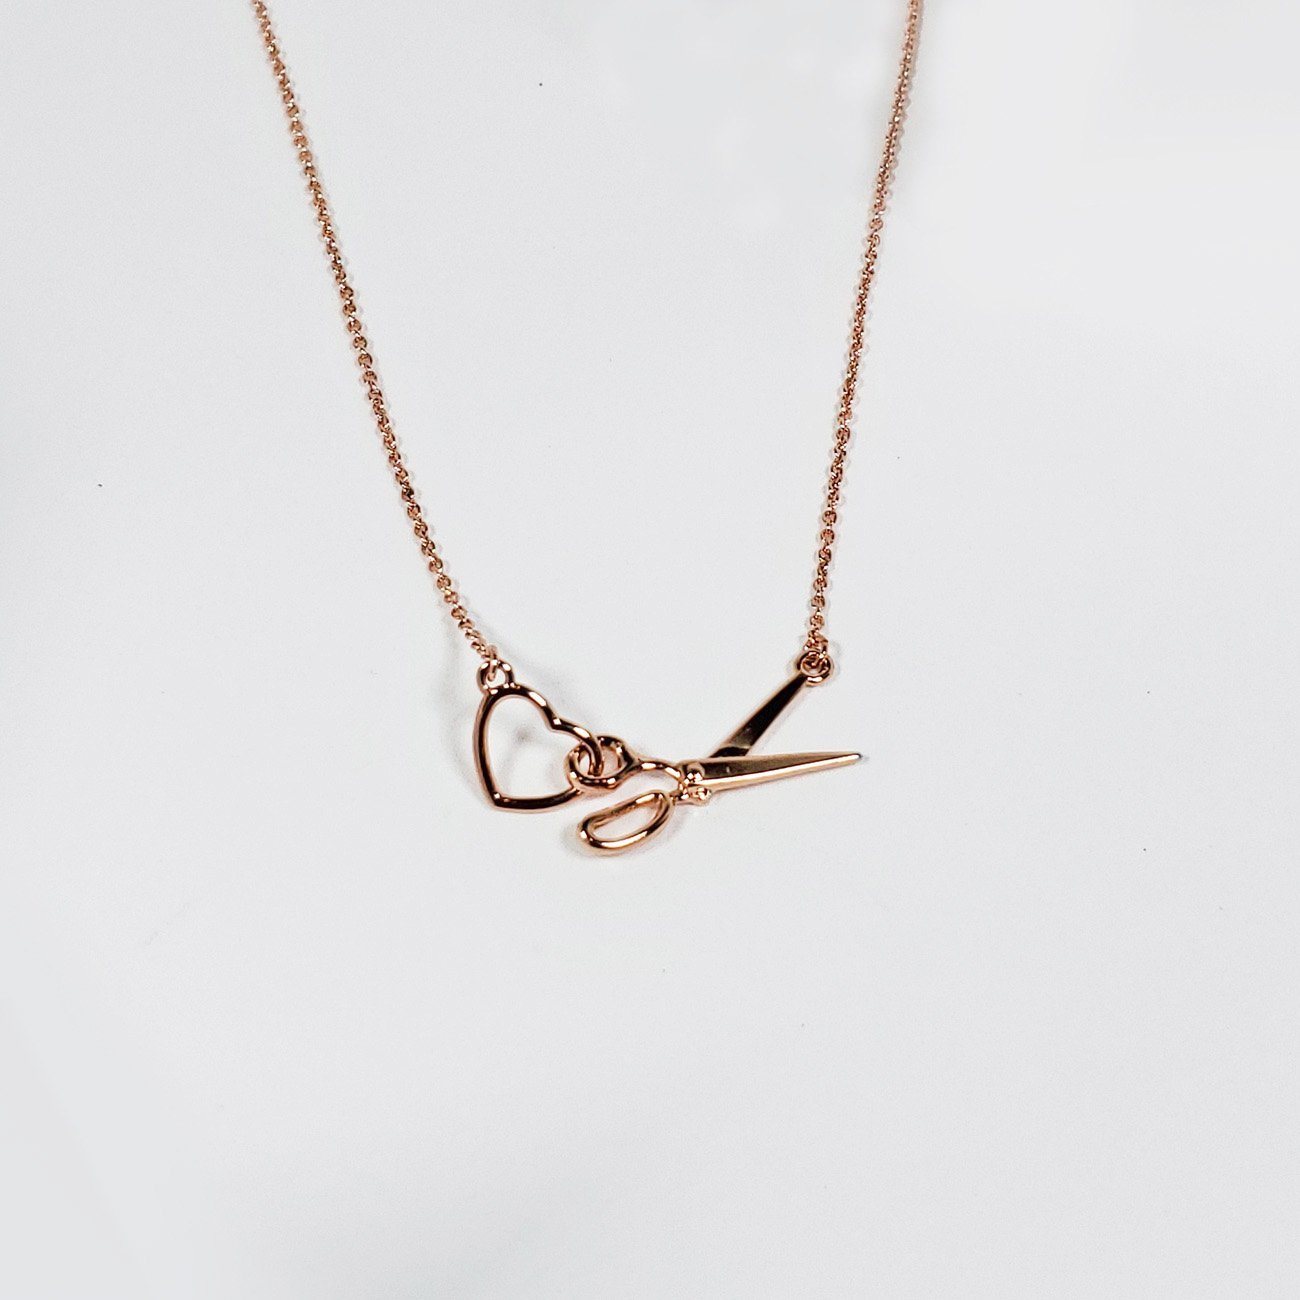 Scissors/Heart Charm Necklace Rose Gold from the Quilt Spot